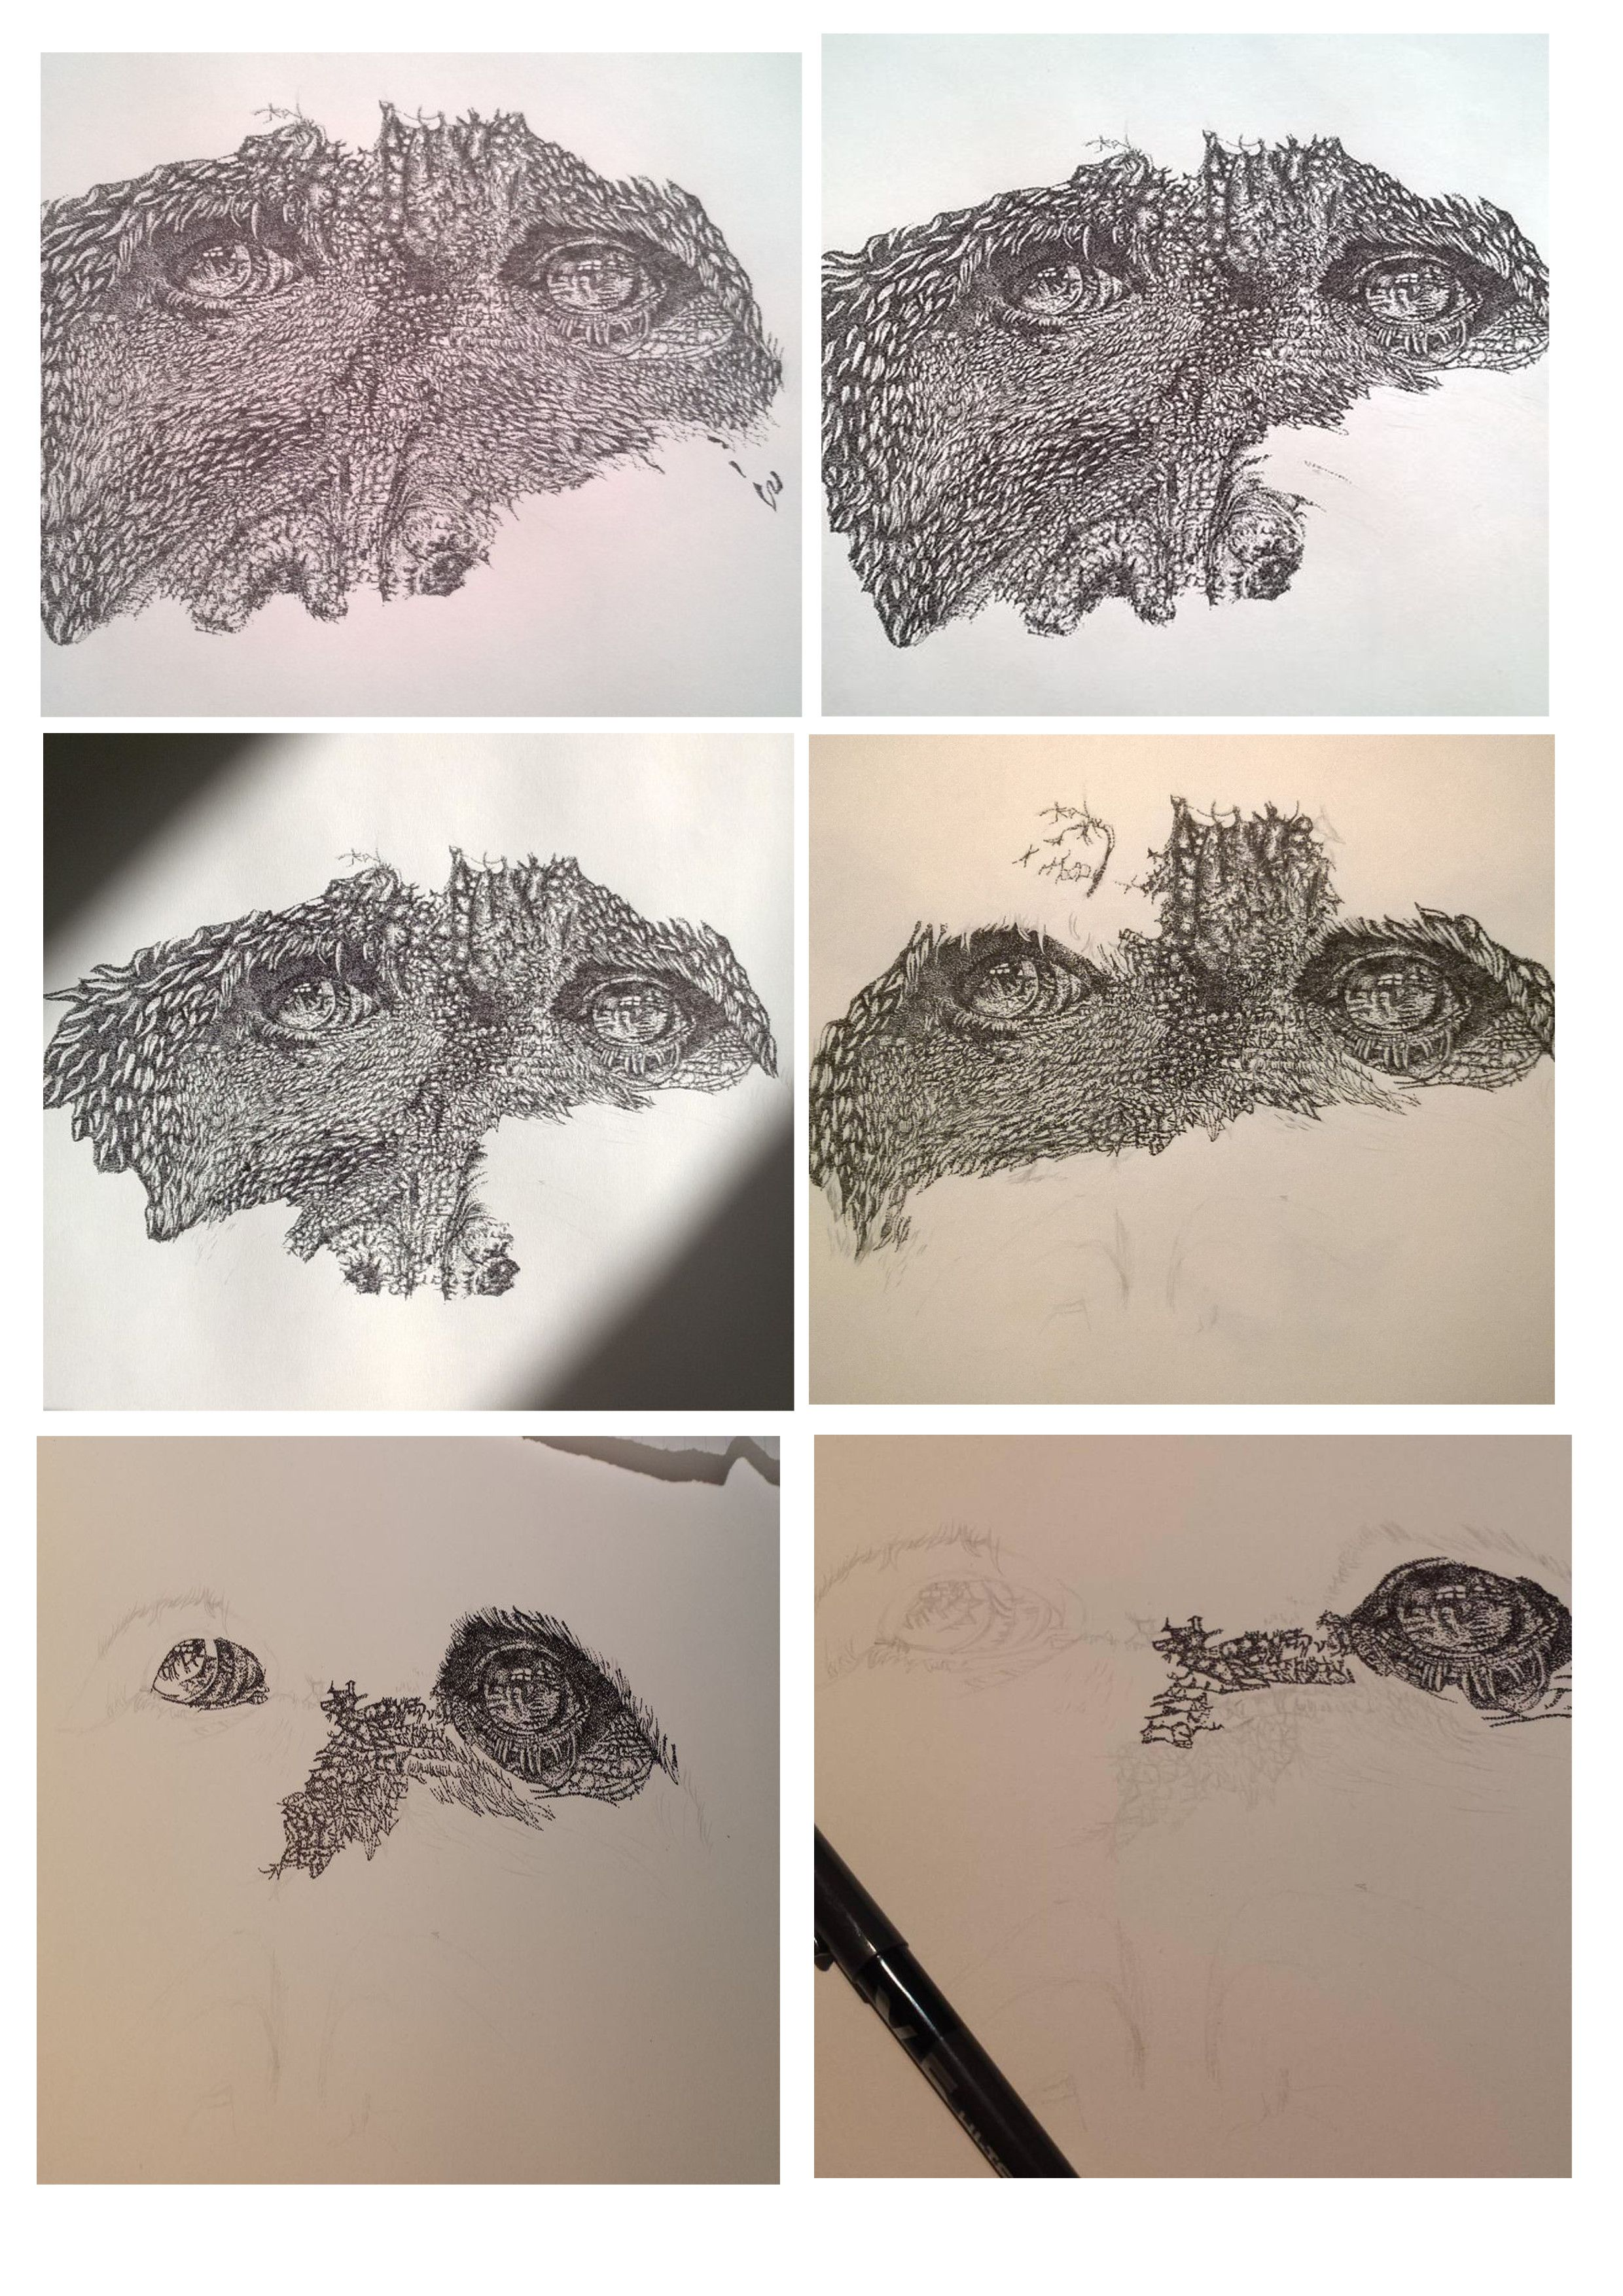 Stages 1 to 6 of my pointillism work Stage 7 in progress